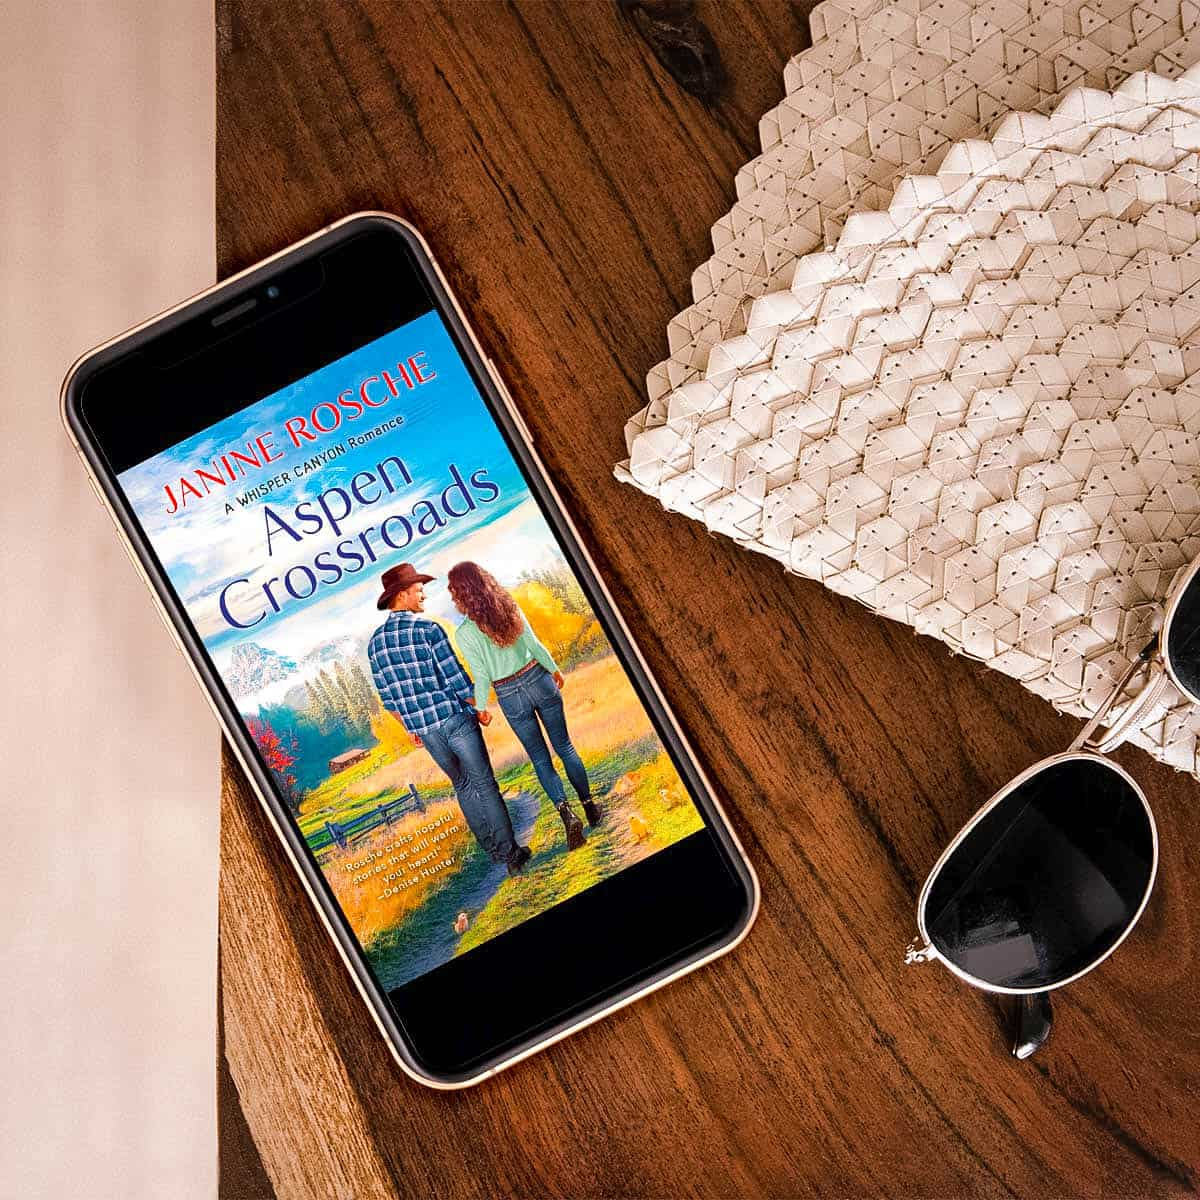 Enjoy this excerpt from Aspen Crossroads by Janine Rosche, an inspirational contemporary romance about overcoming strife and opening your heart to love